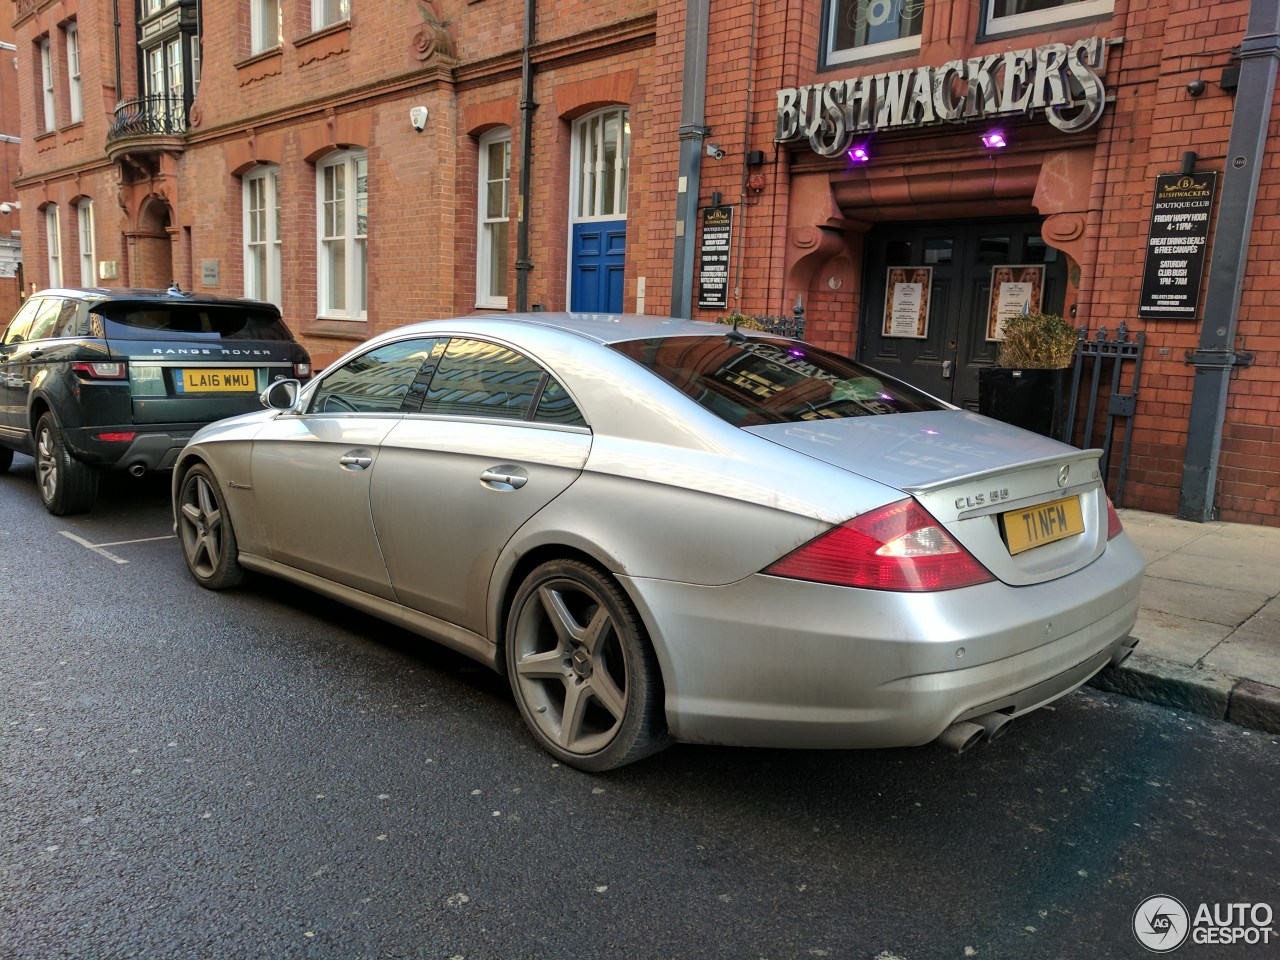 Mercedes benz cls 55 amg 26 january 2017 autogespot for Mercedes benz cls 550 amg